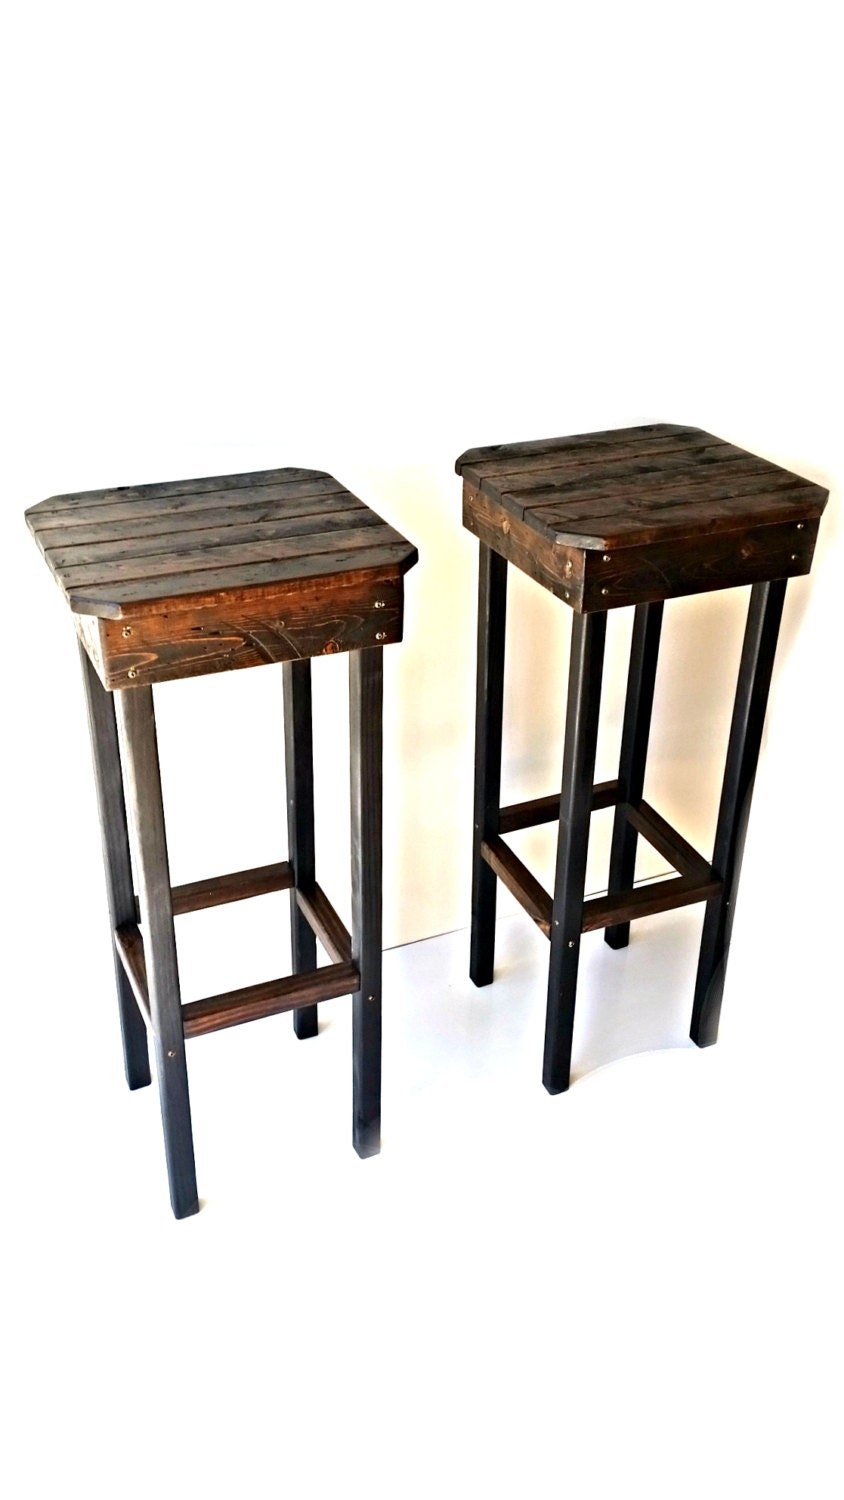 Rustic Bar Stools Vintage Bar Stools Farmhouse Bar